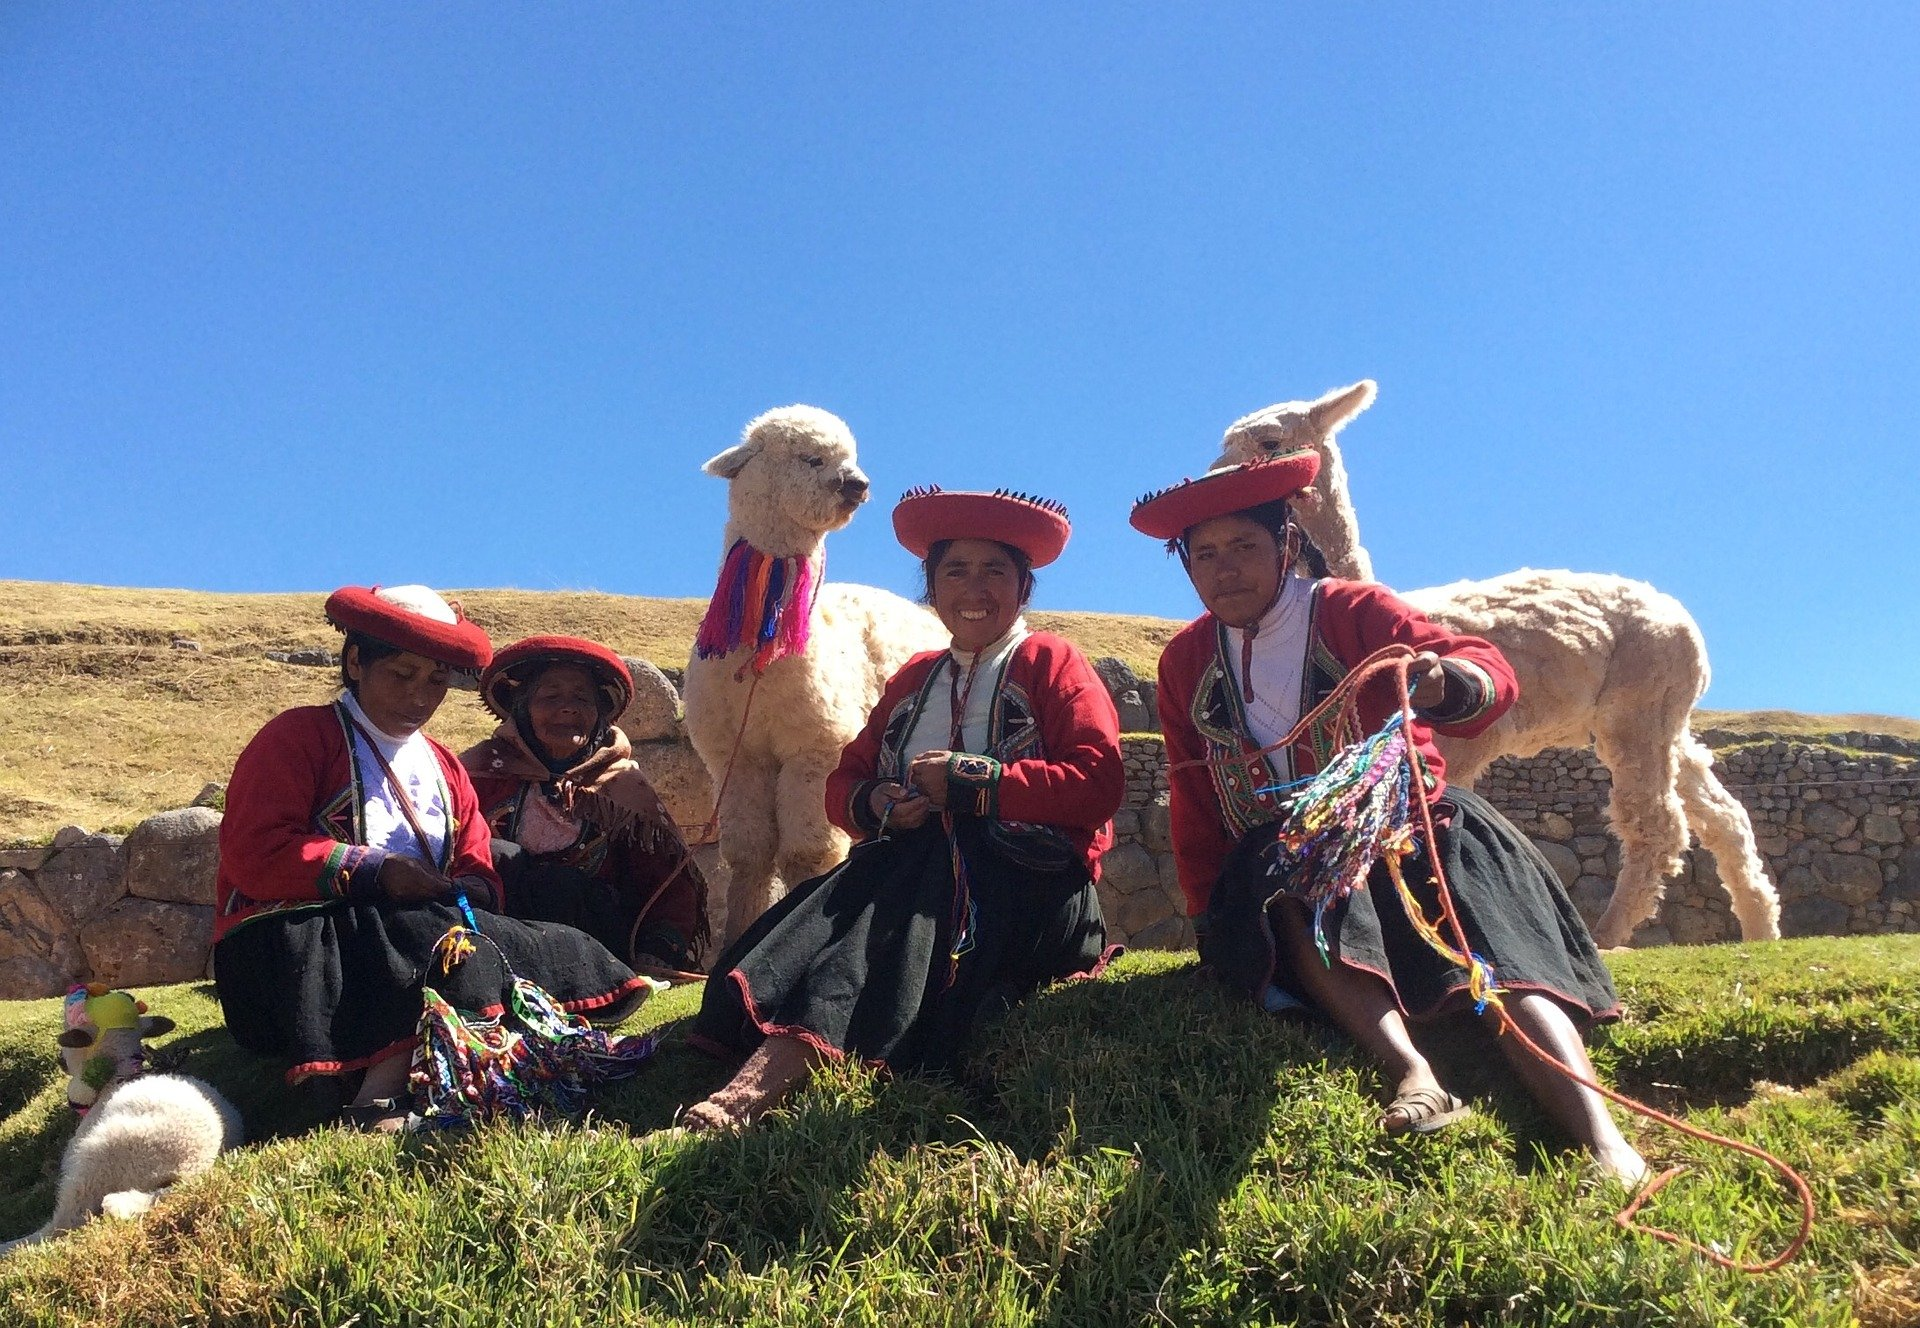 Traditionelle Trachten - Sprache und Kultur in Peru